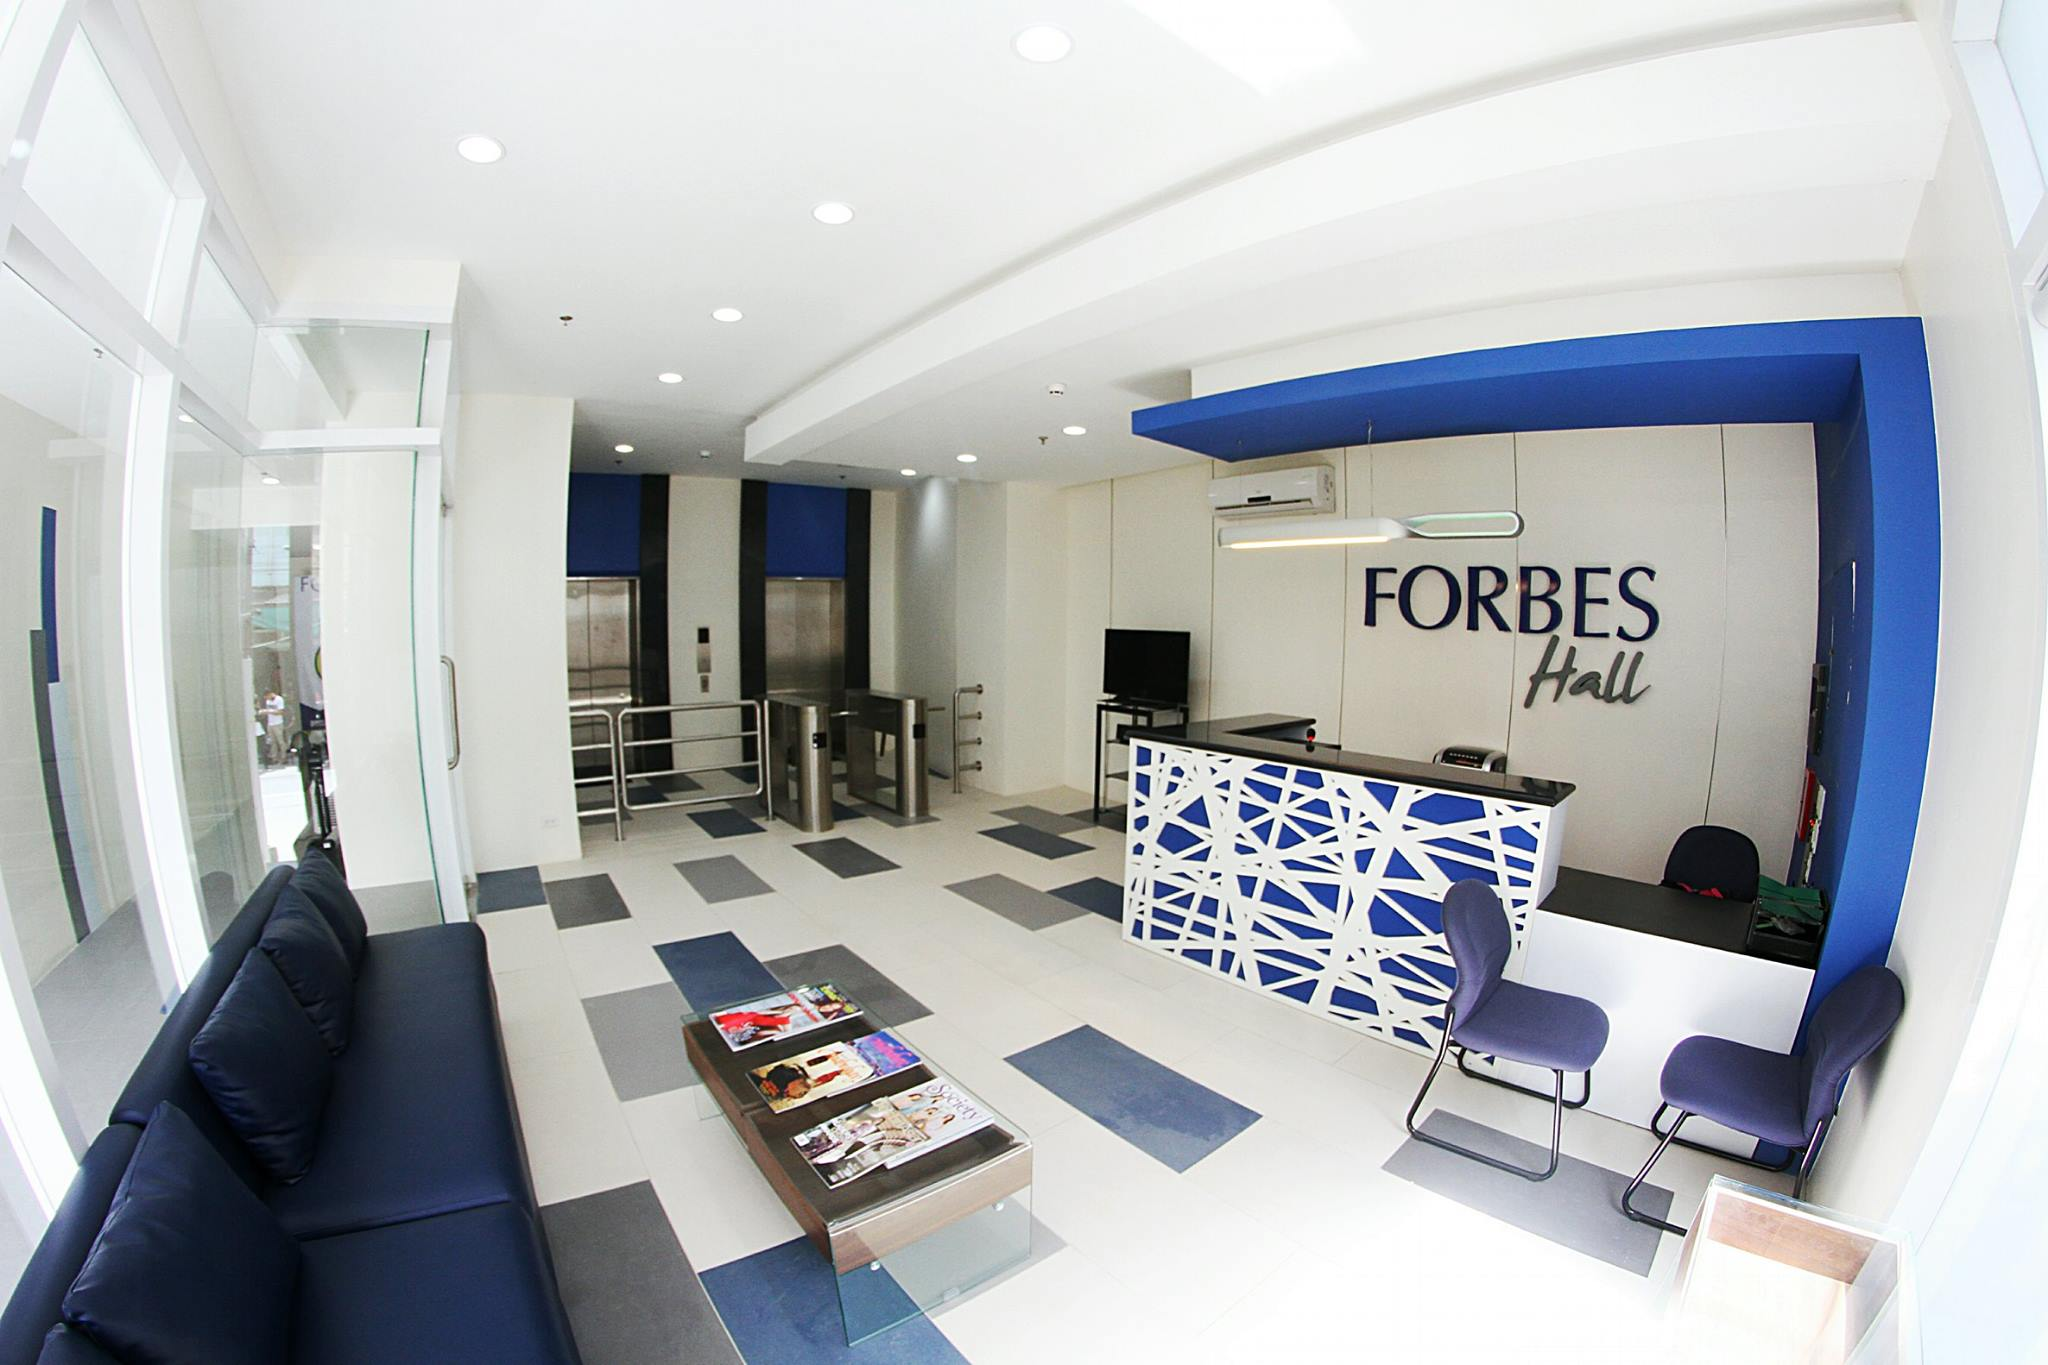 Forbes Hall - Reception Area